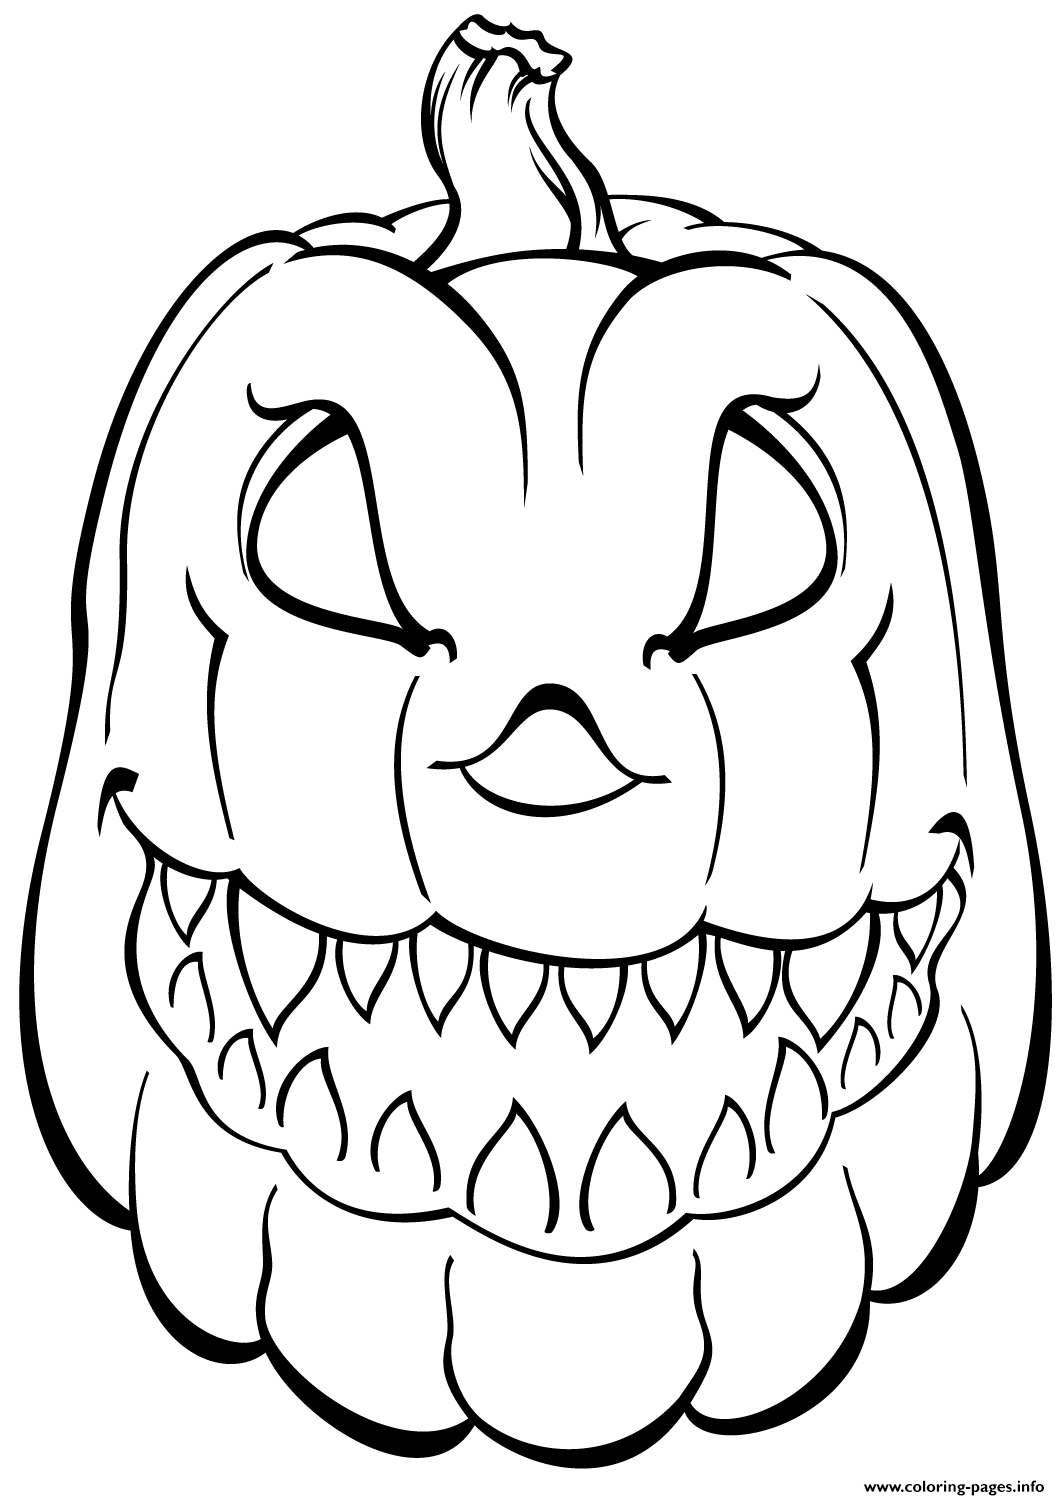 coloring pumpkin halloween clipart halloween pumpkin coloring pages free printable colouring pumpkin clipart coloring halloween